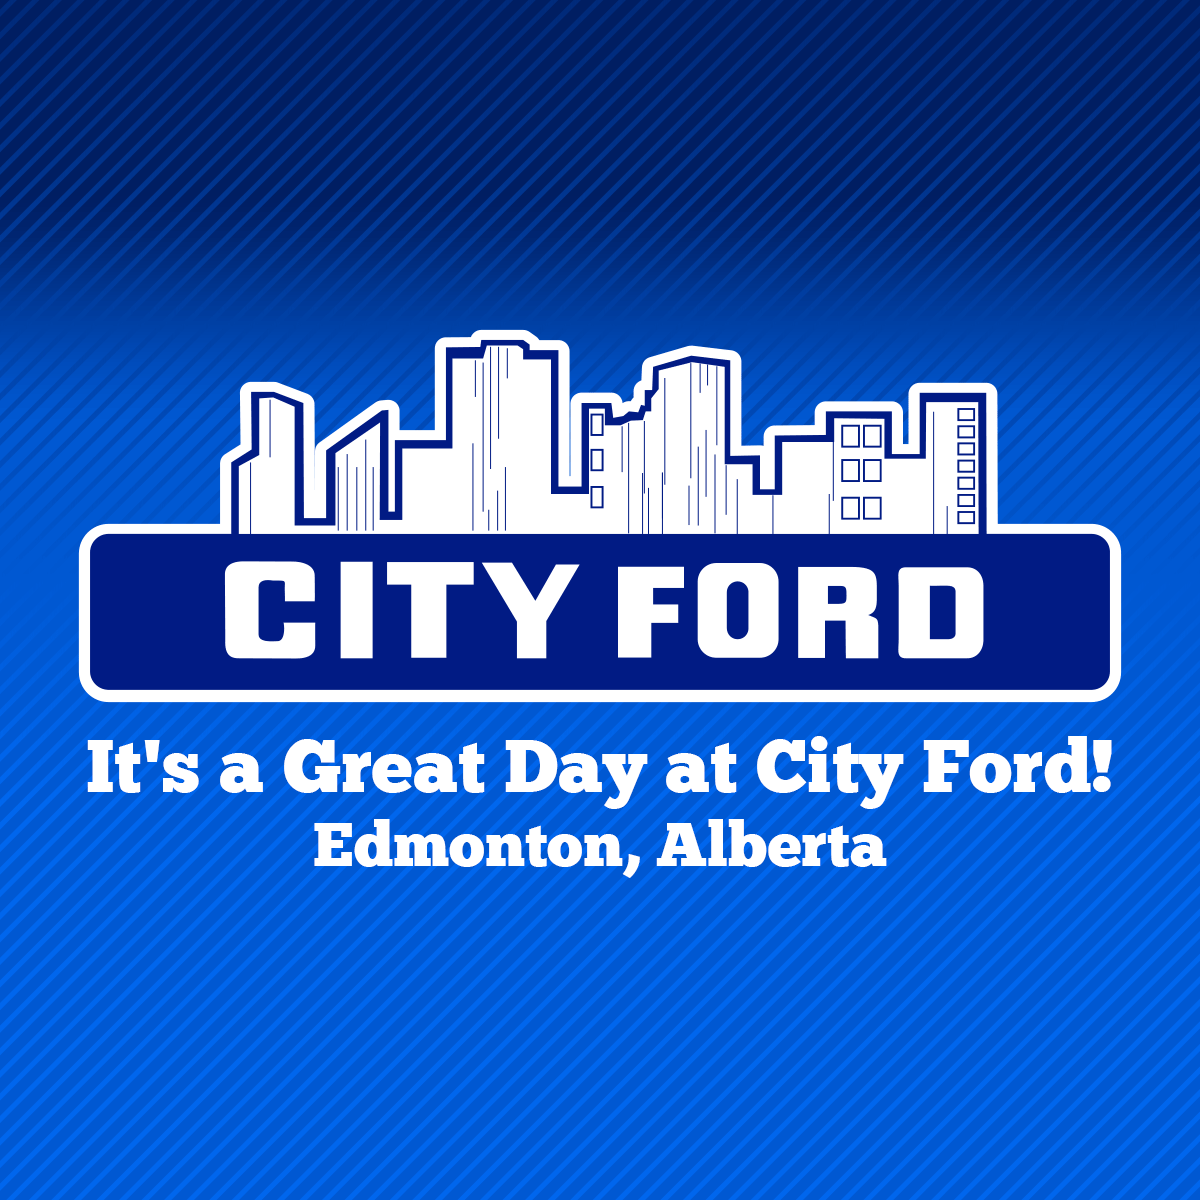 It S A Great Day At City Ford We Are A Ford Dealership In Edmonton With New Used Cars Trucks Suv S Vans For Sale Au Used Cars Ford Sales Van